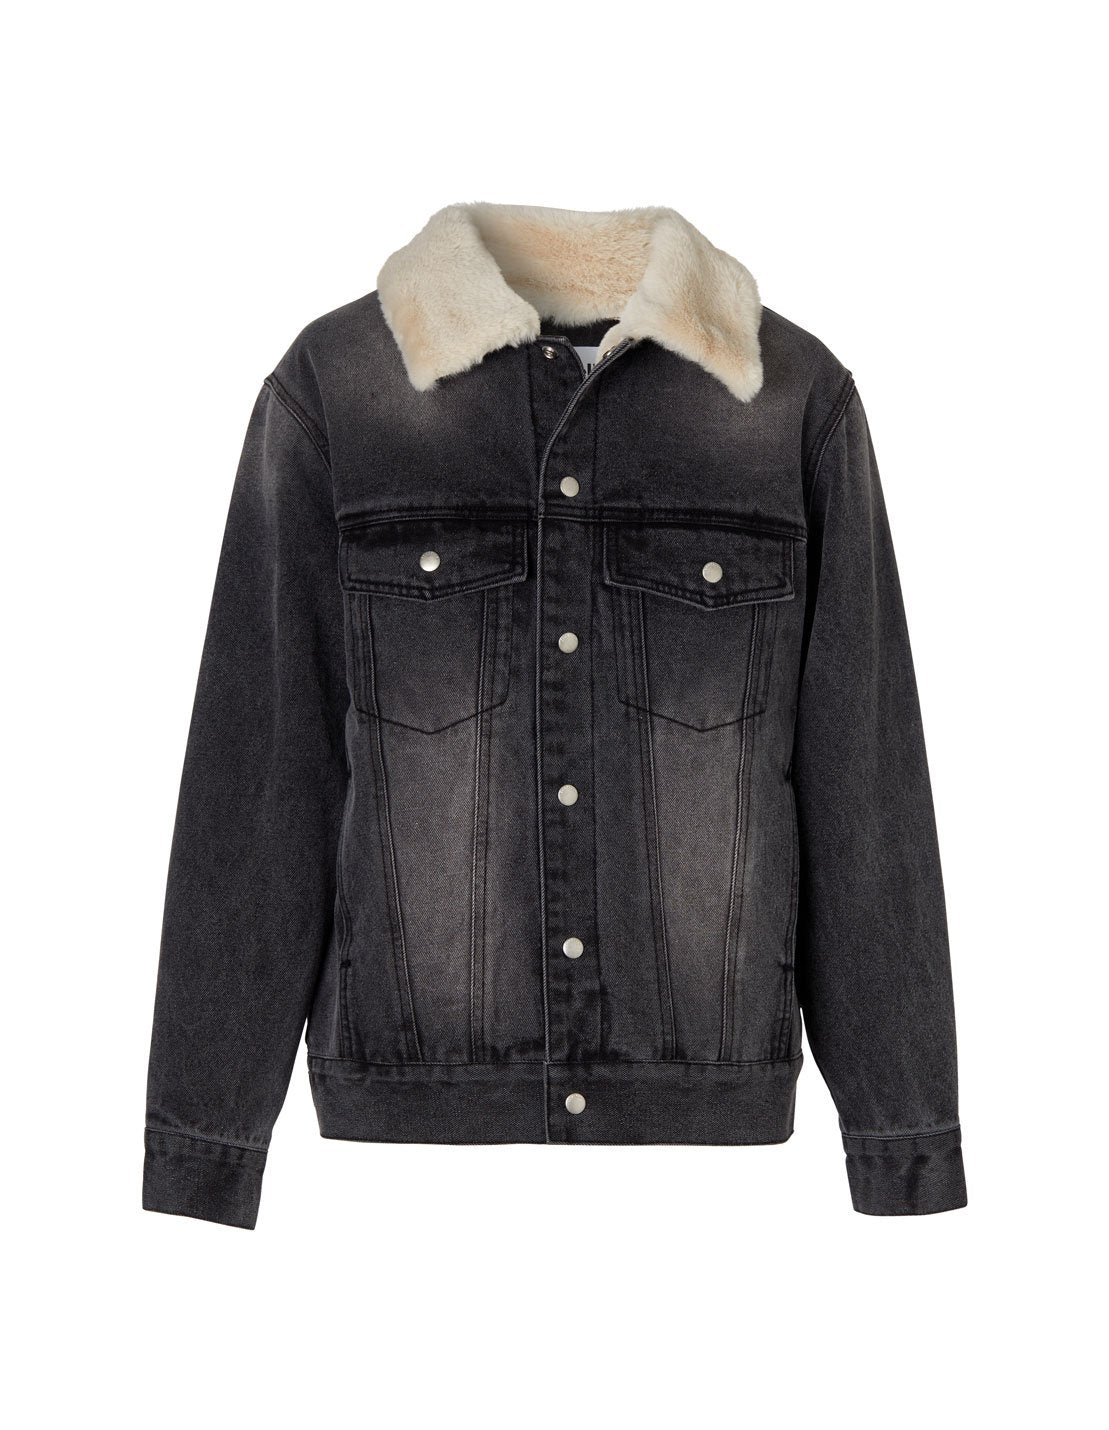 Denim Faux Fur Jacket - Stone Wash